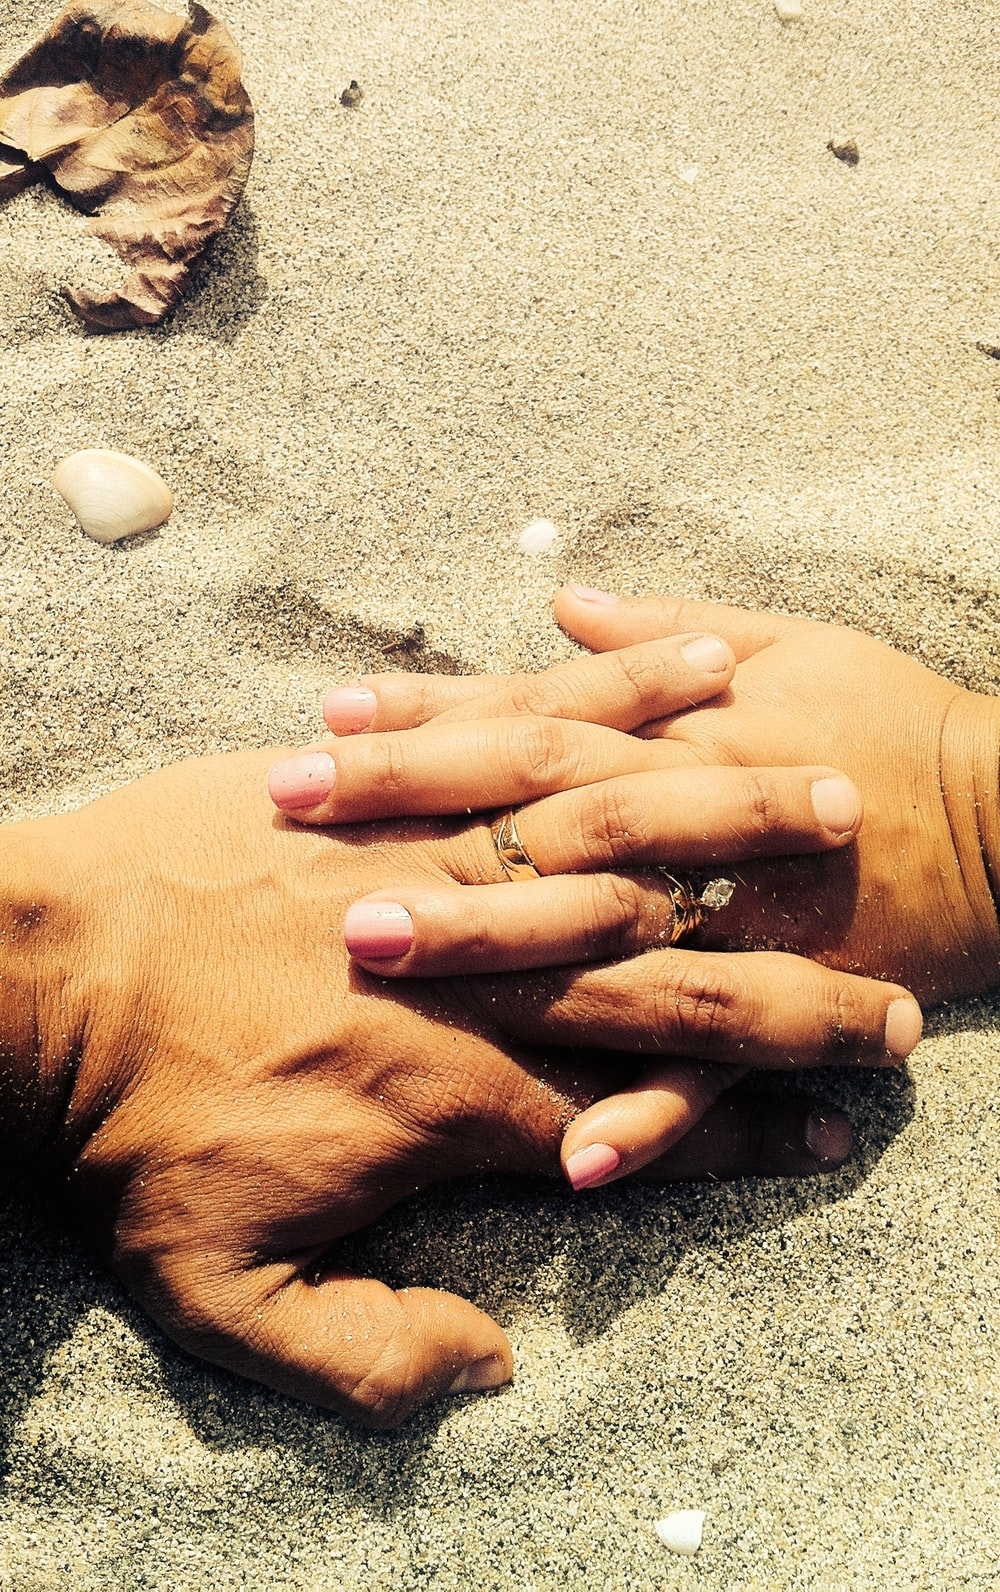 A married couple at the beach, wearing wedding rings, holds hands on the sand